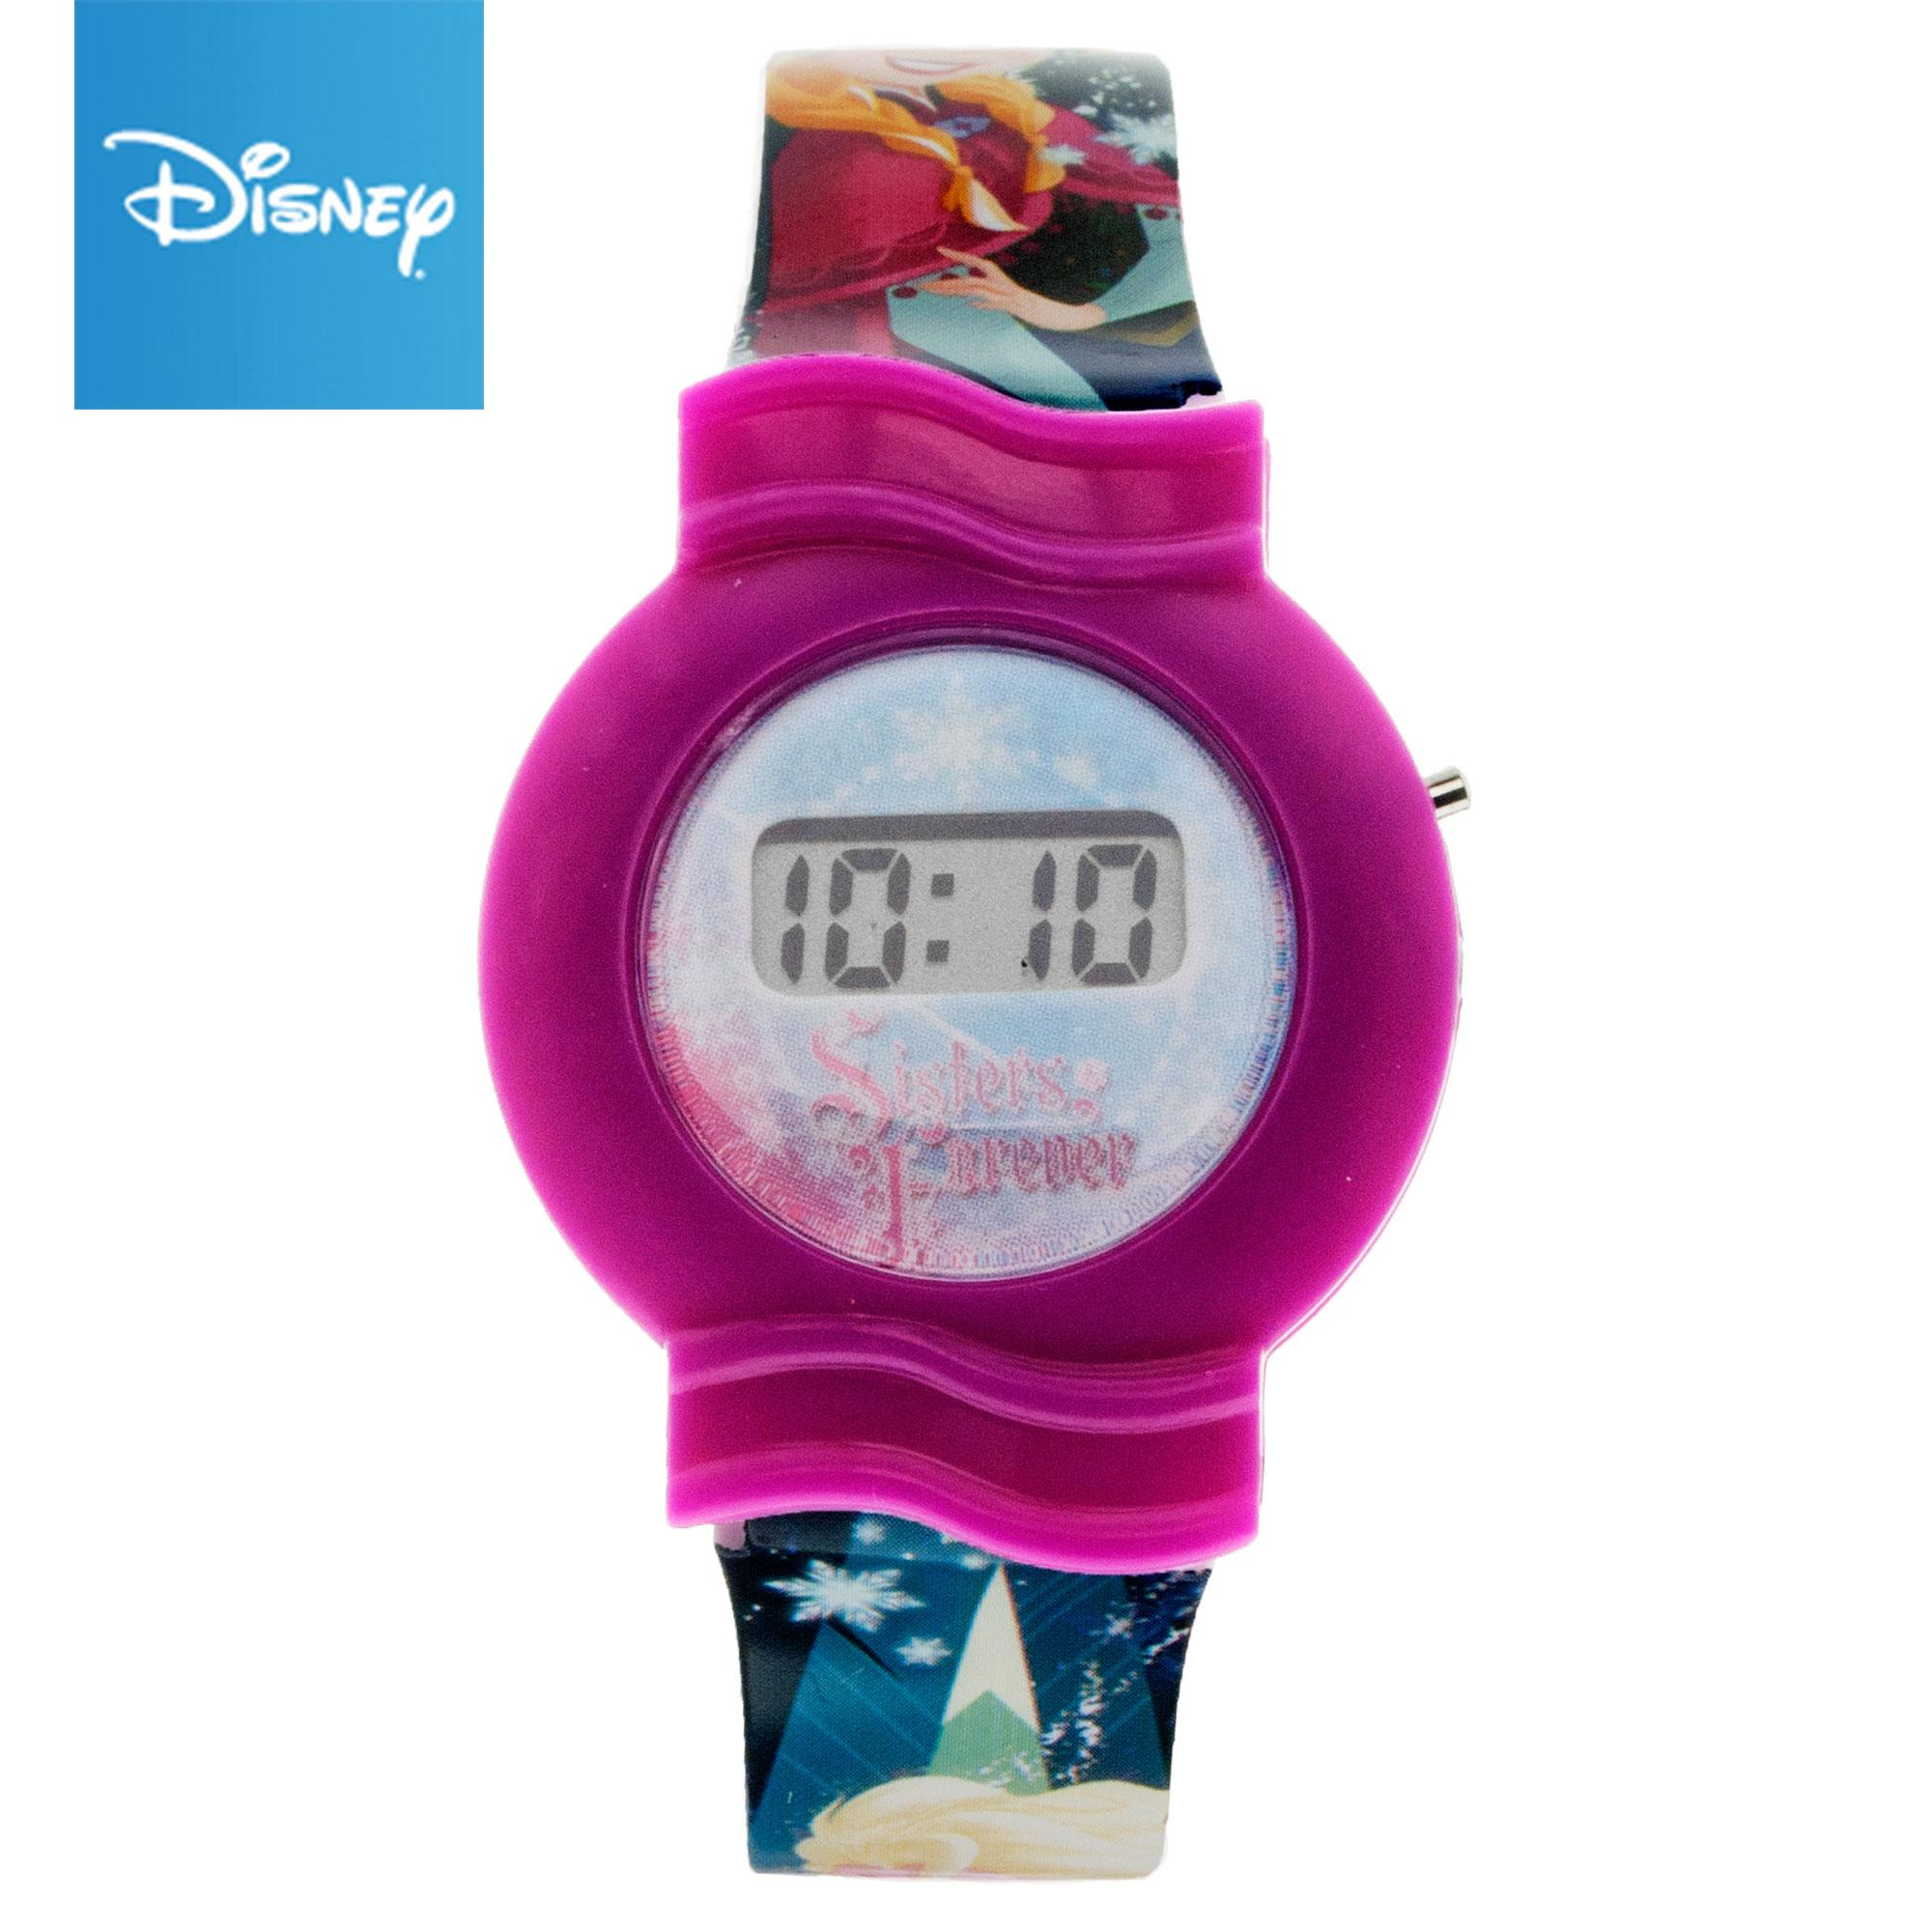 Modest Disney Brand Mickey Mouse Frozen Child Cartoon Watches Girls Watch Quartz Children Wristwatches Waterproof Childrens Watches Watches